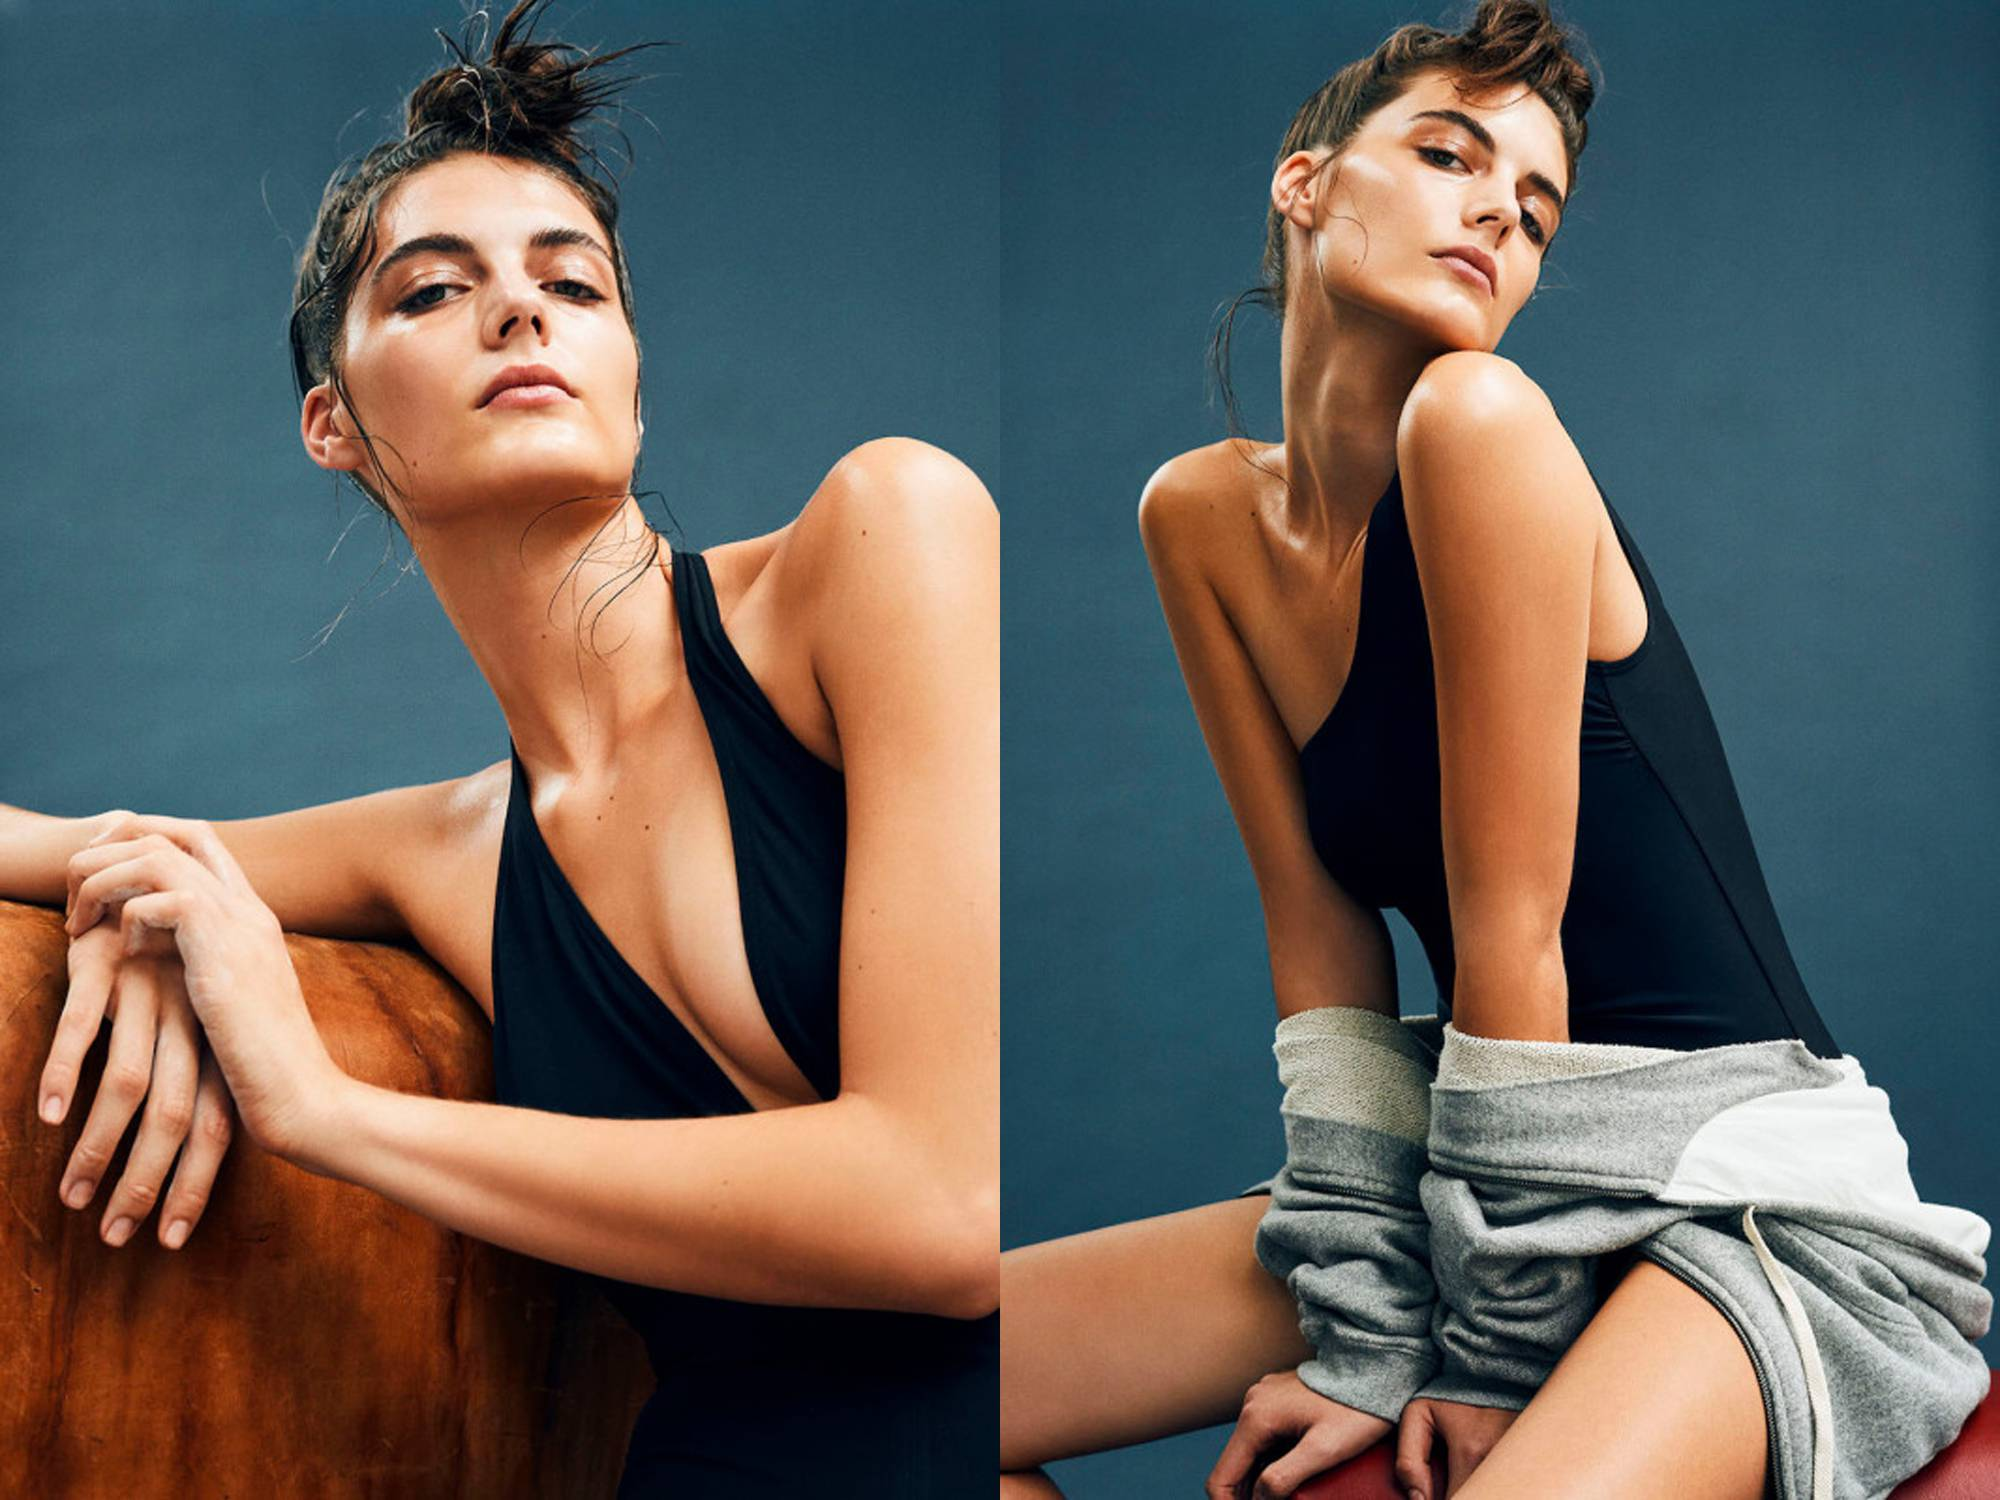 marie-claire-france-yesonfashion-com-09